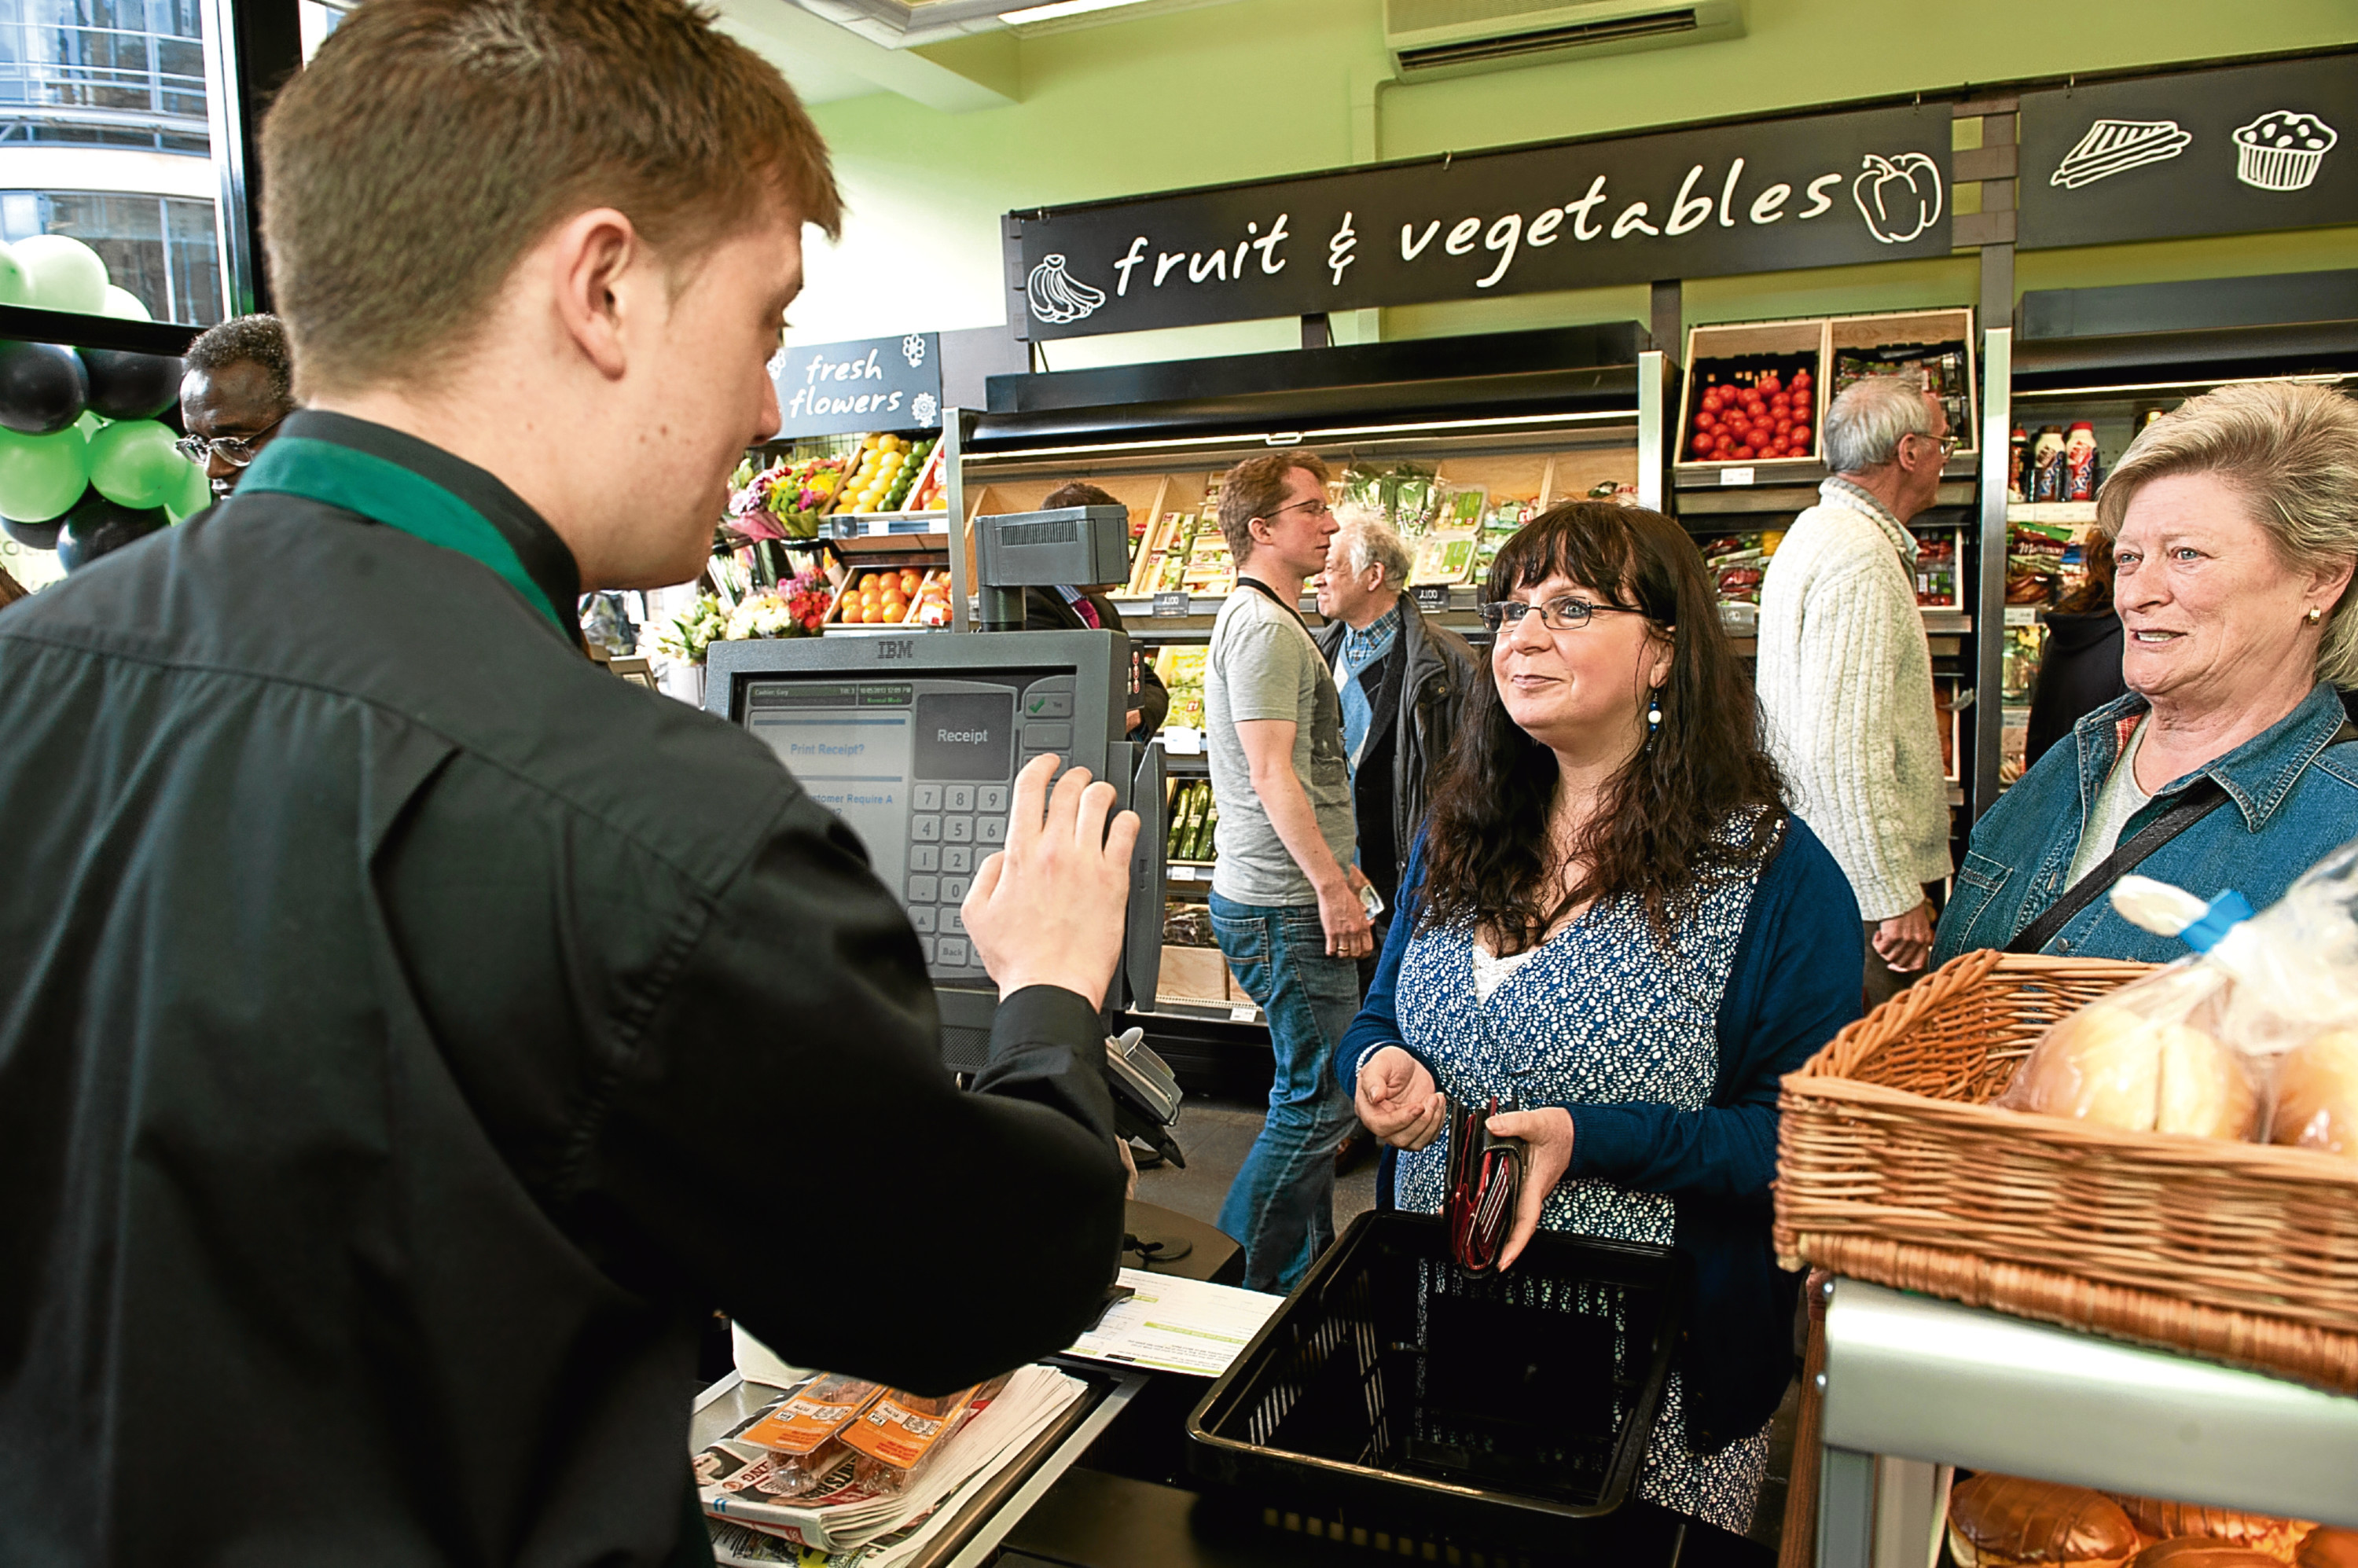 Customers at the till in a Scotmid store